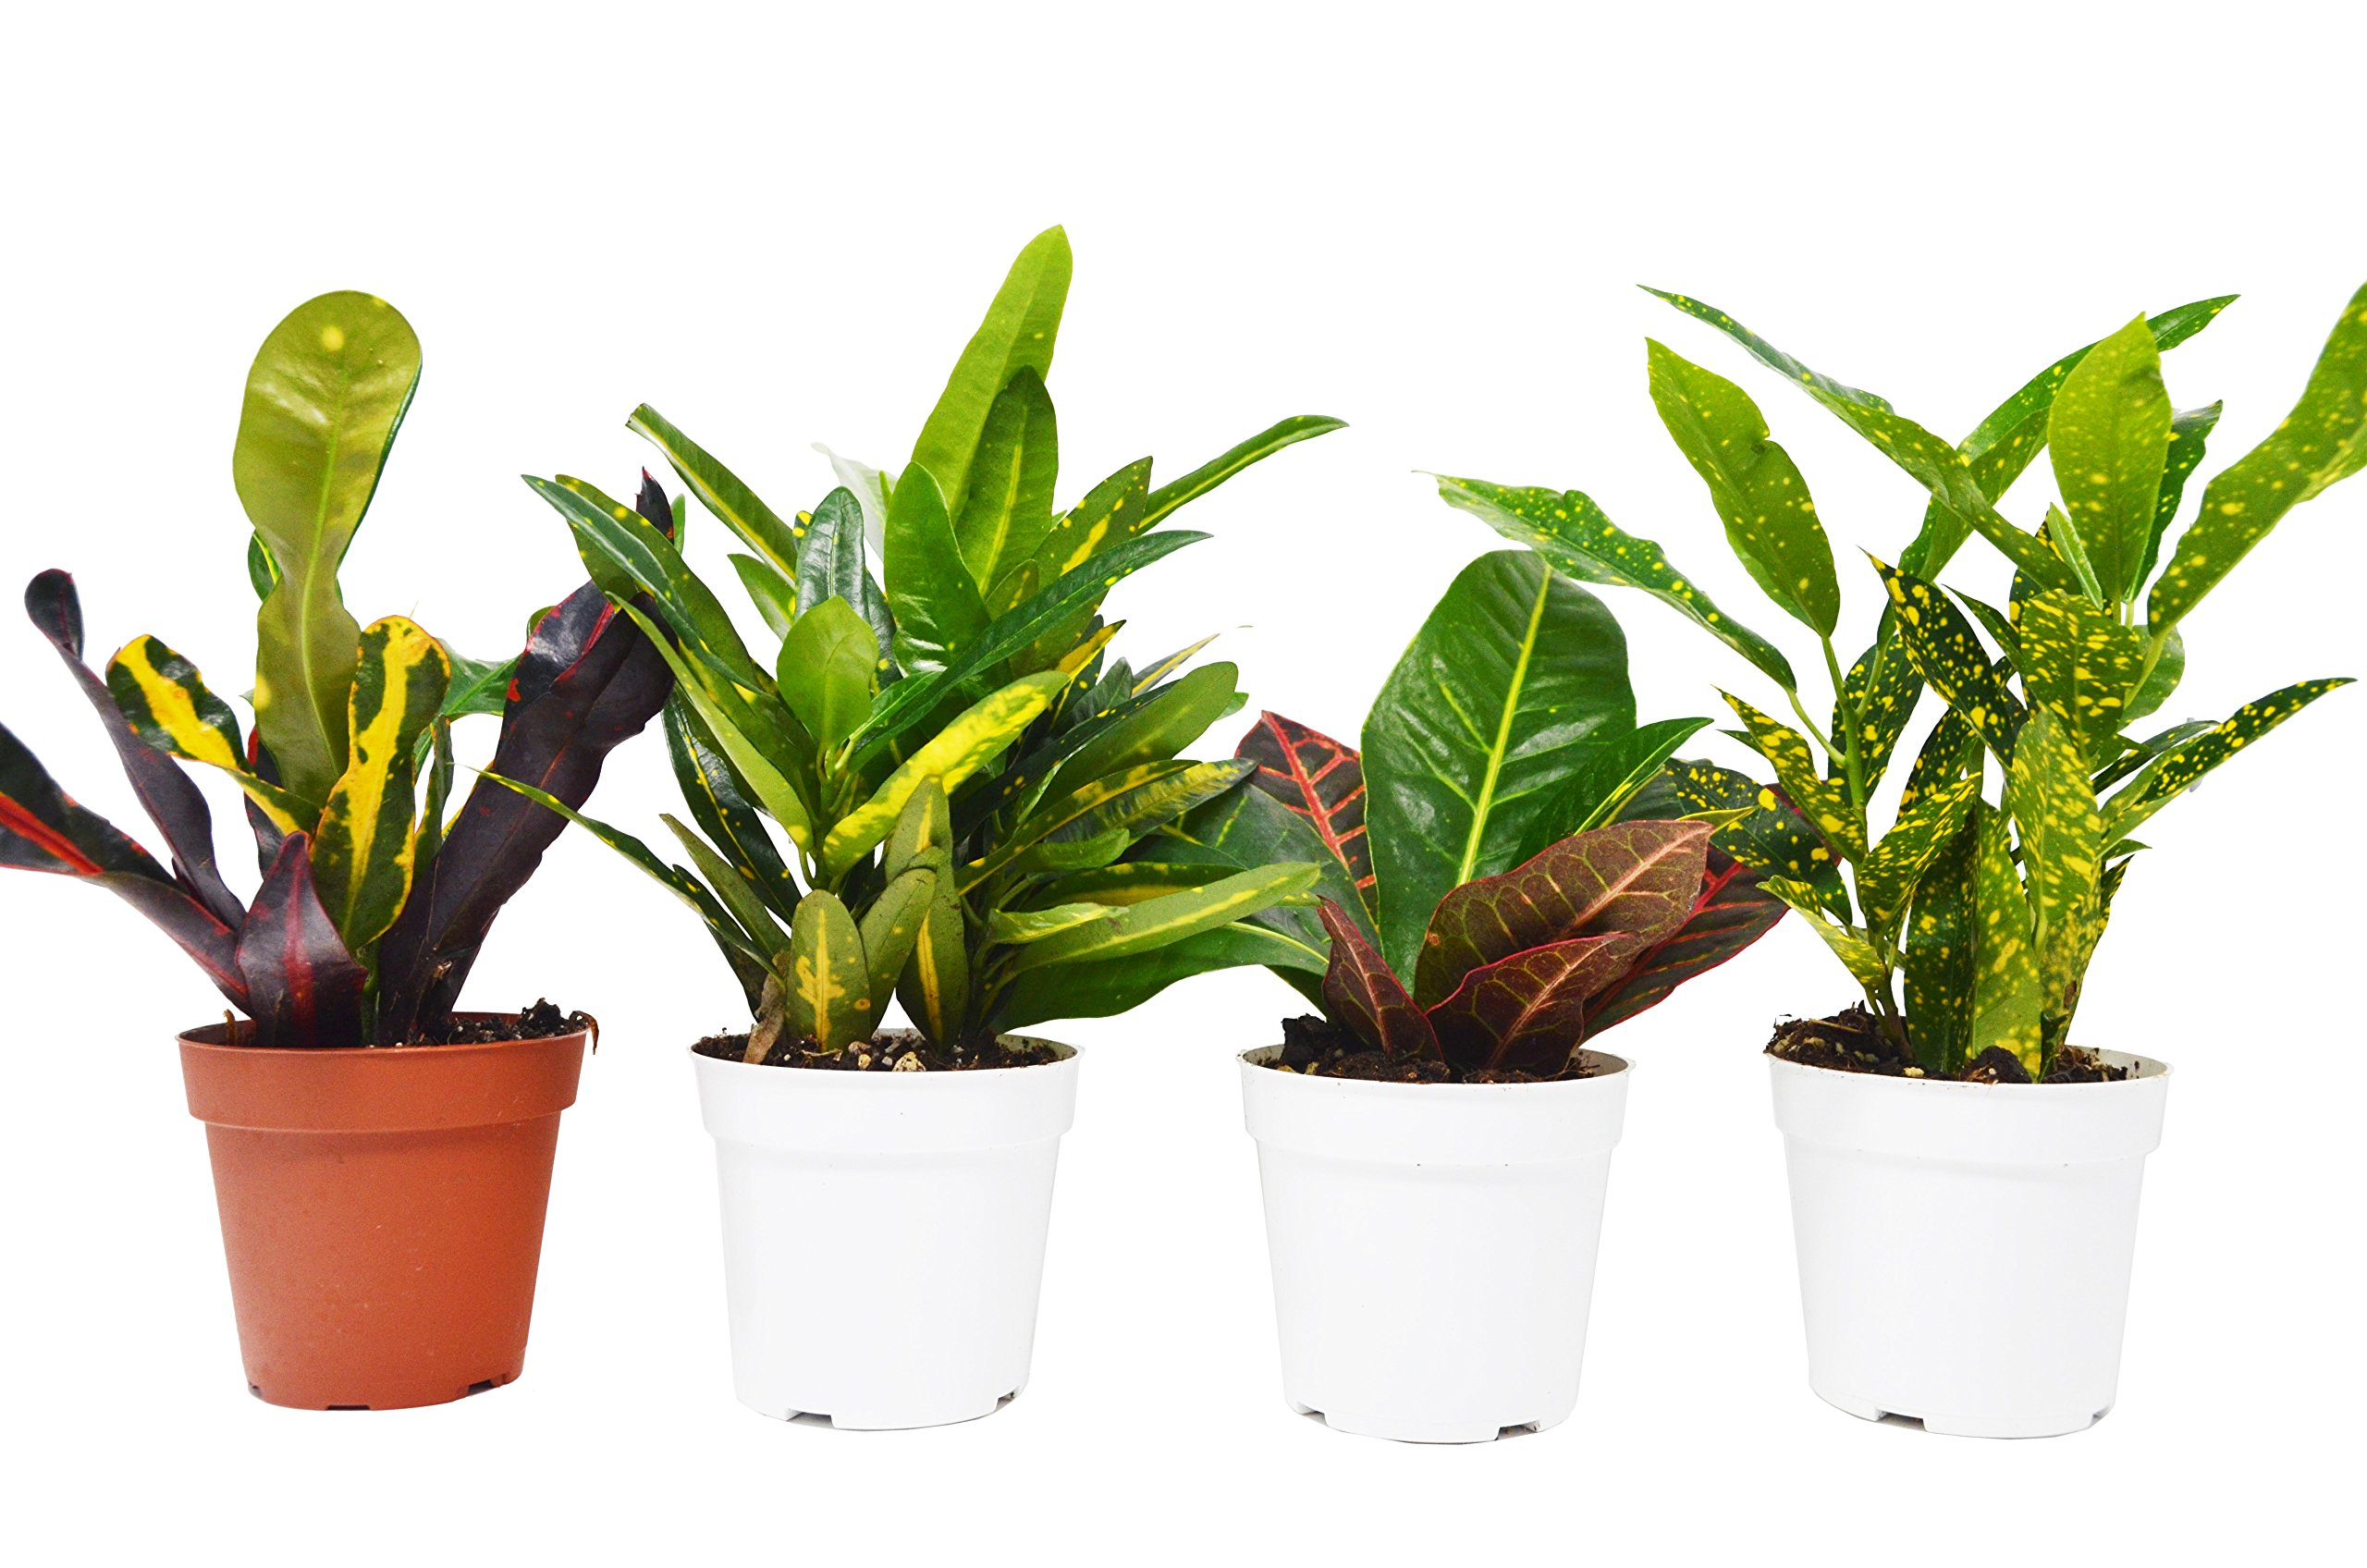 4 Croton Plant Variety Pack - All Different Species - Live Plants - FREE Care Guide - 4'' Pot